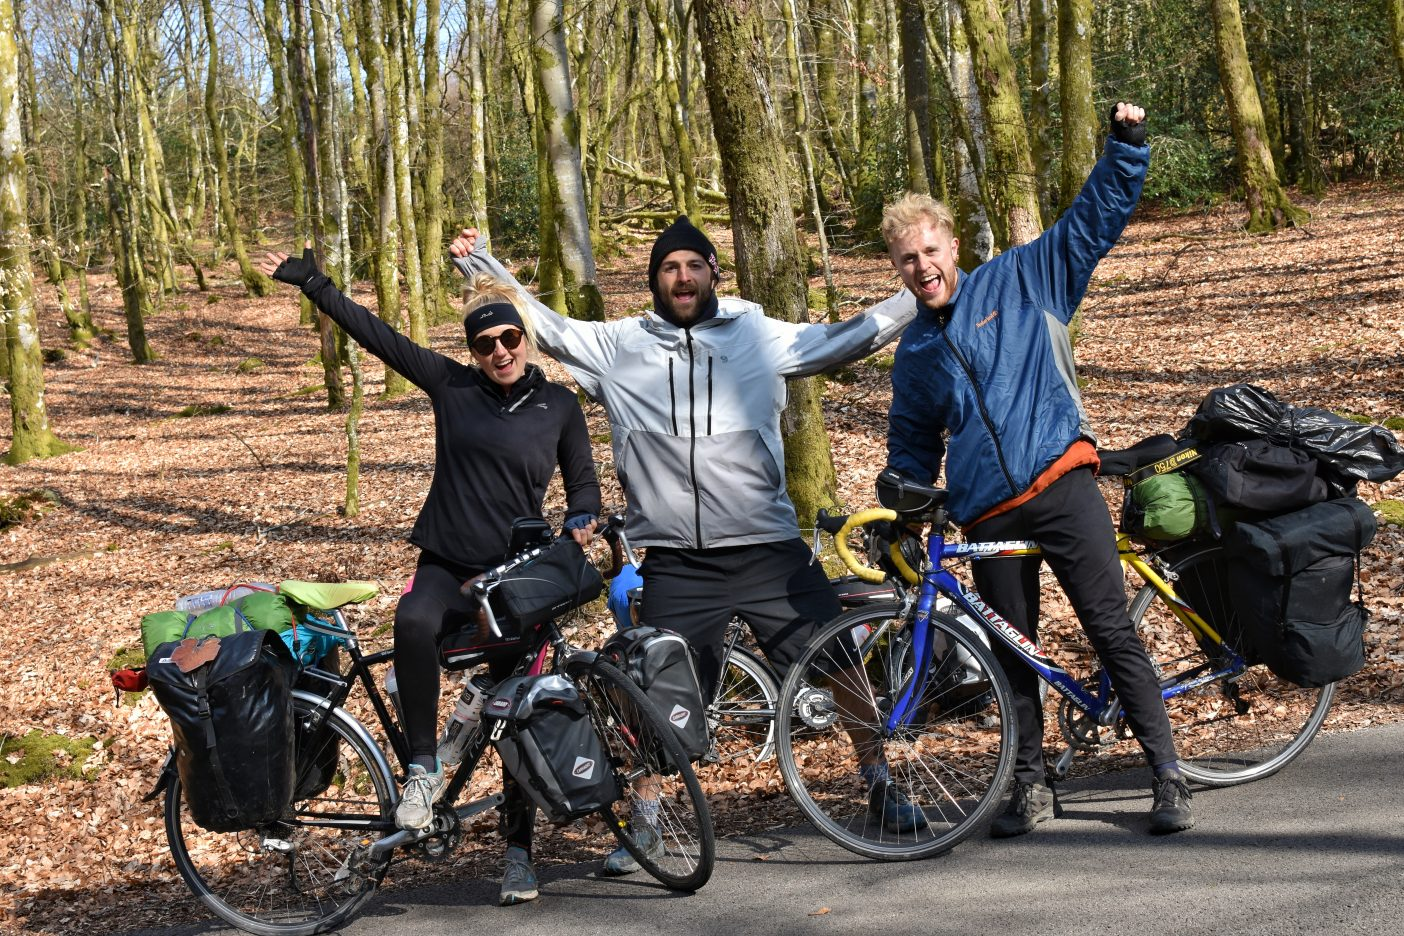 Three cycle tourers